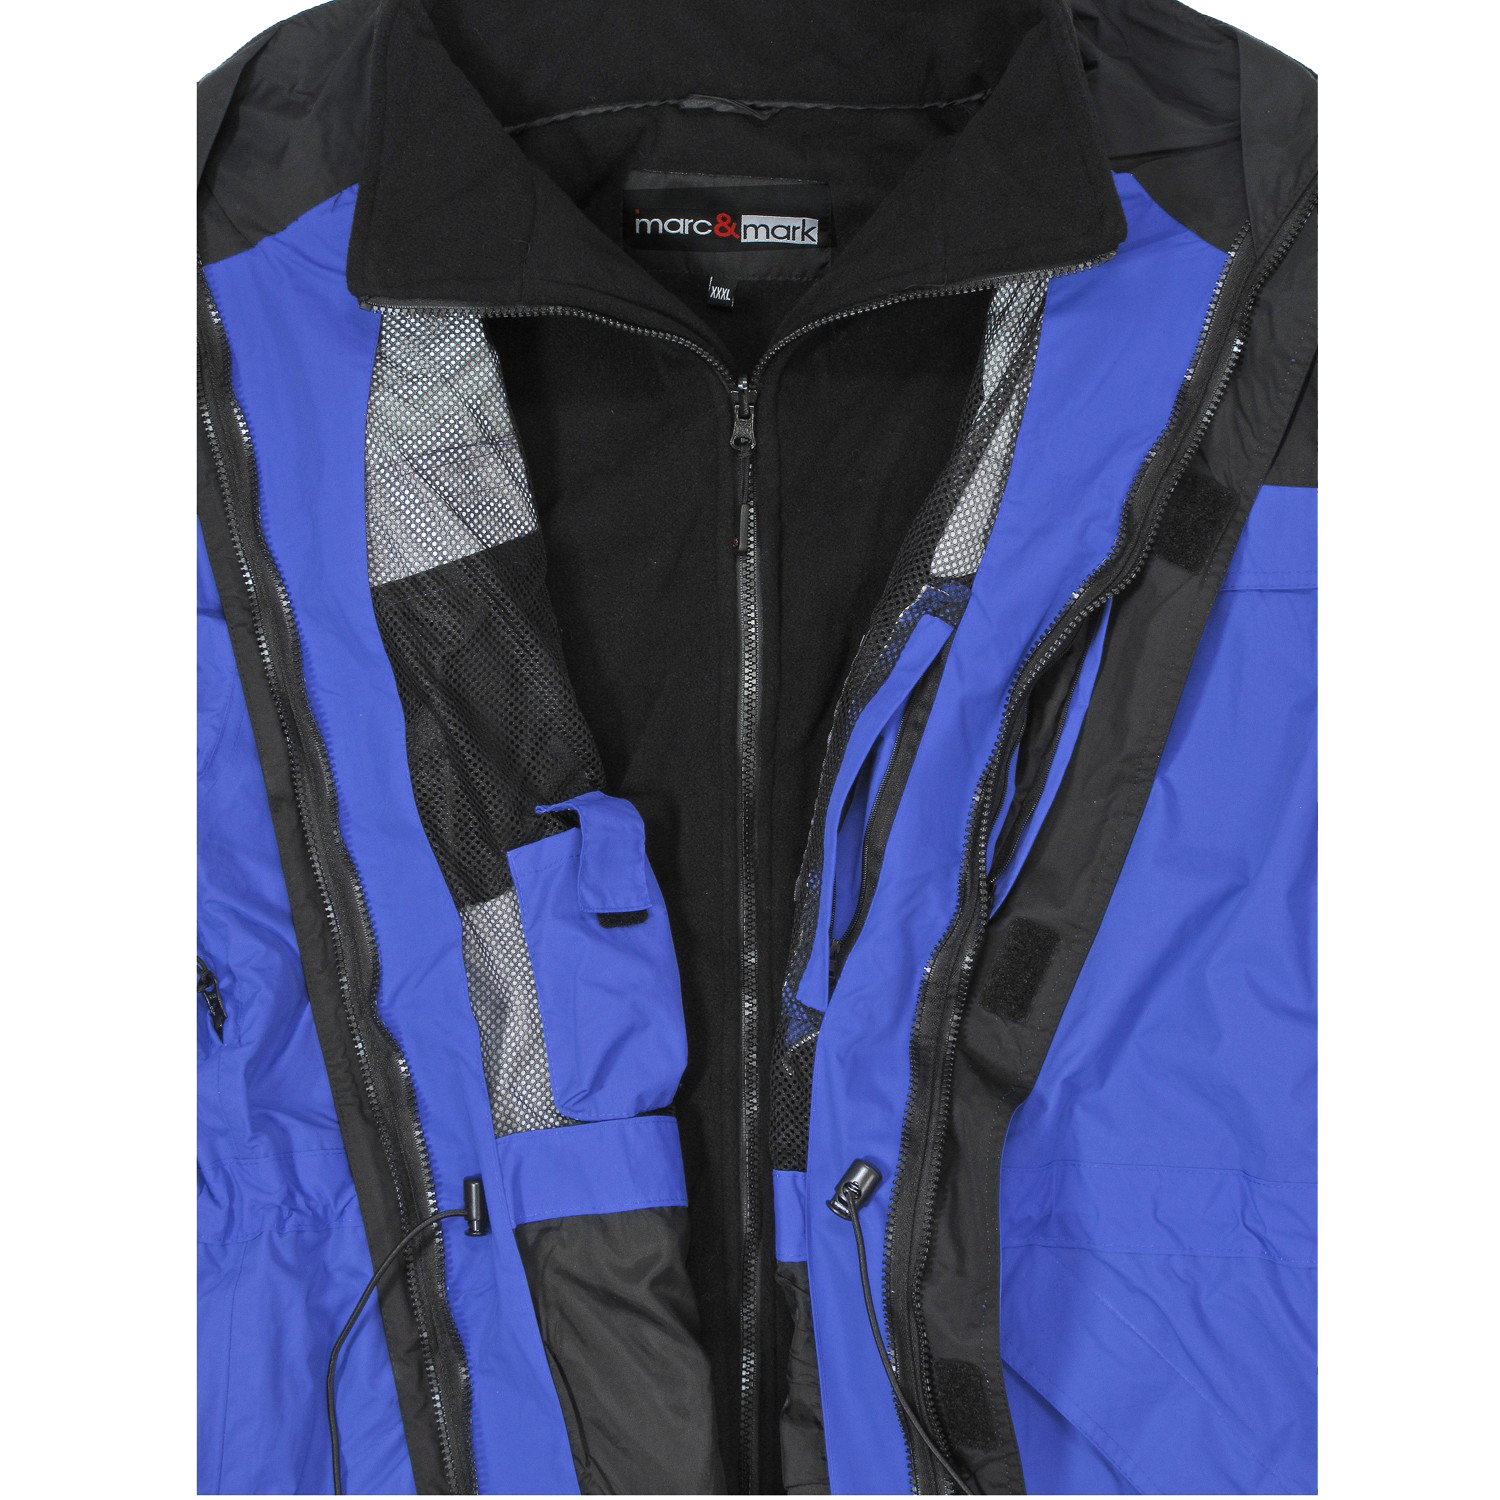 Detail Image to Blue 3in1 jacket by marc&mark in oversizes until 10XL